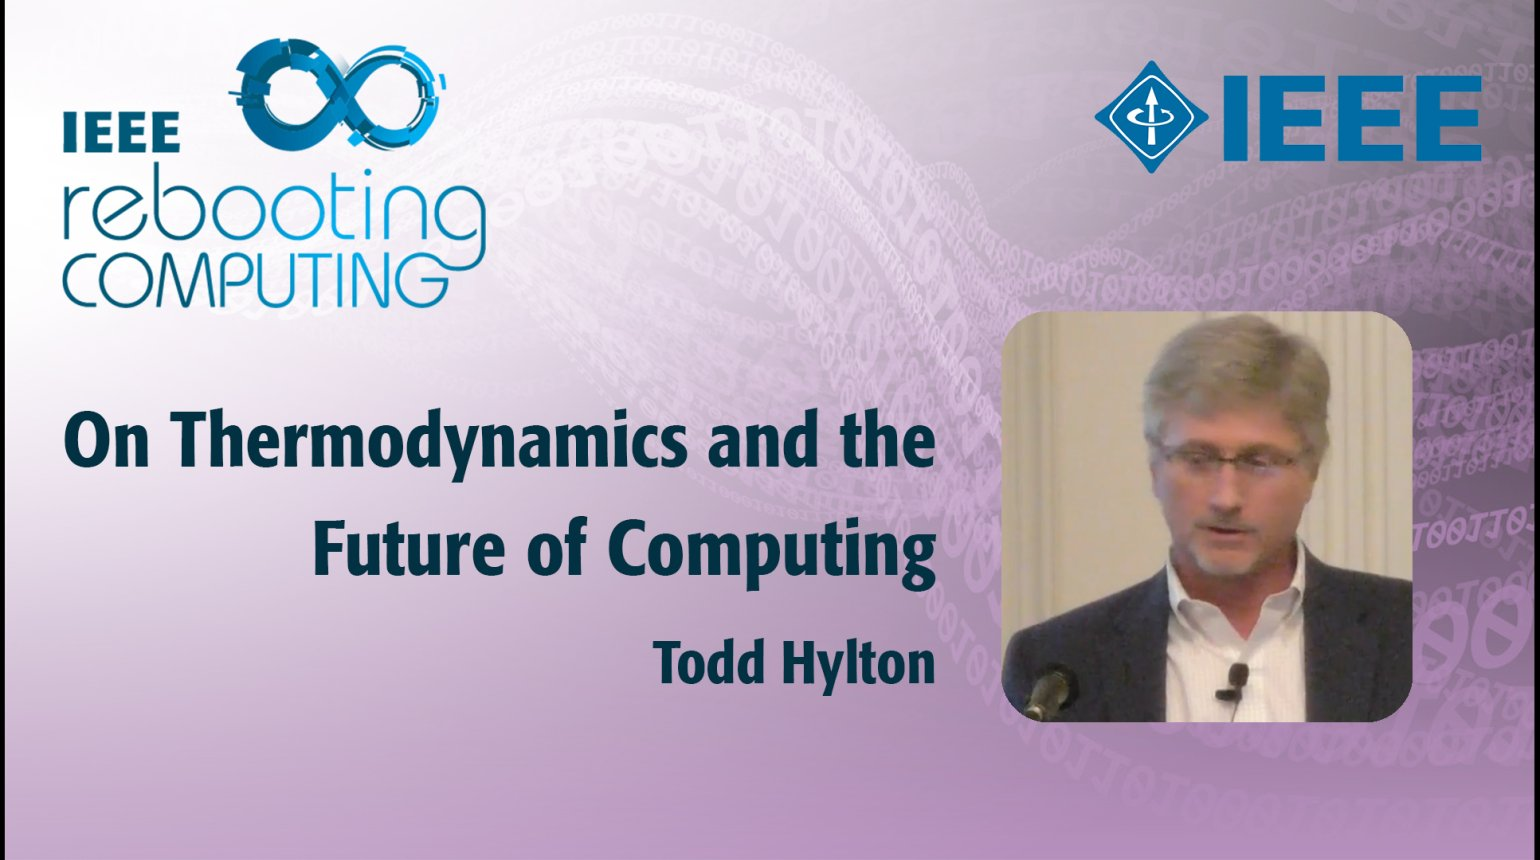 On Thermodynamics and the Future of Computing - IEEE Rebooting Computing 2017